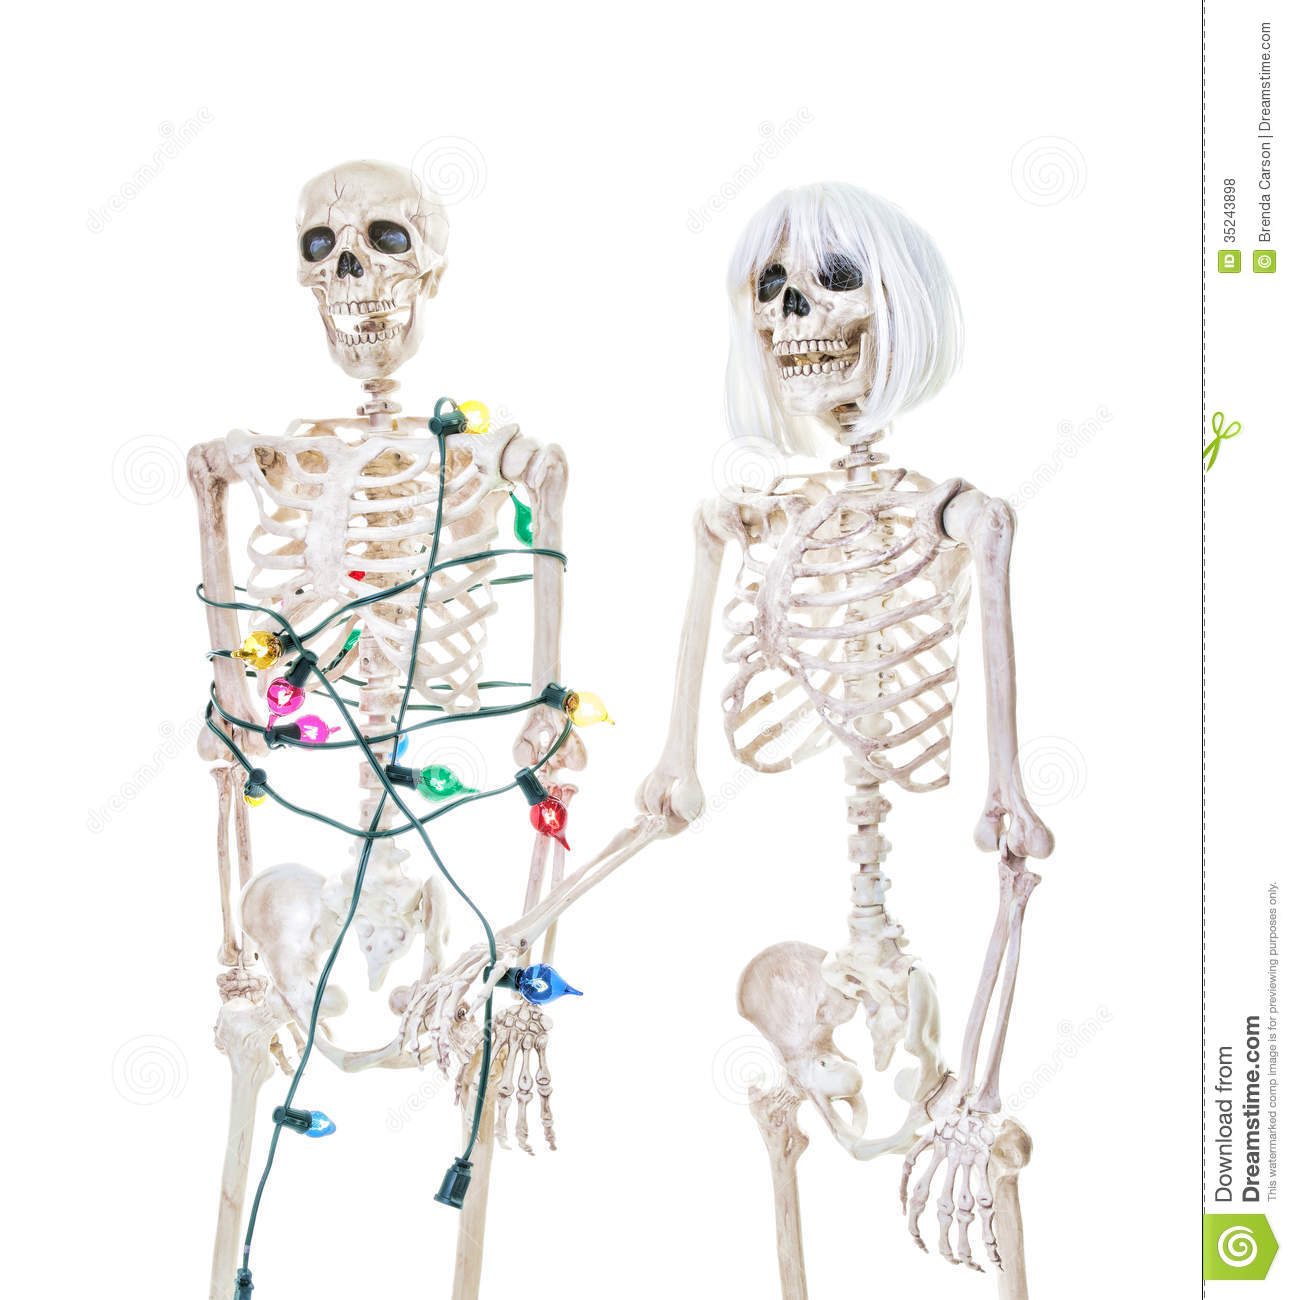 [Image: captive-christmas-skeleton-male-tied-up-...243898.jpg]